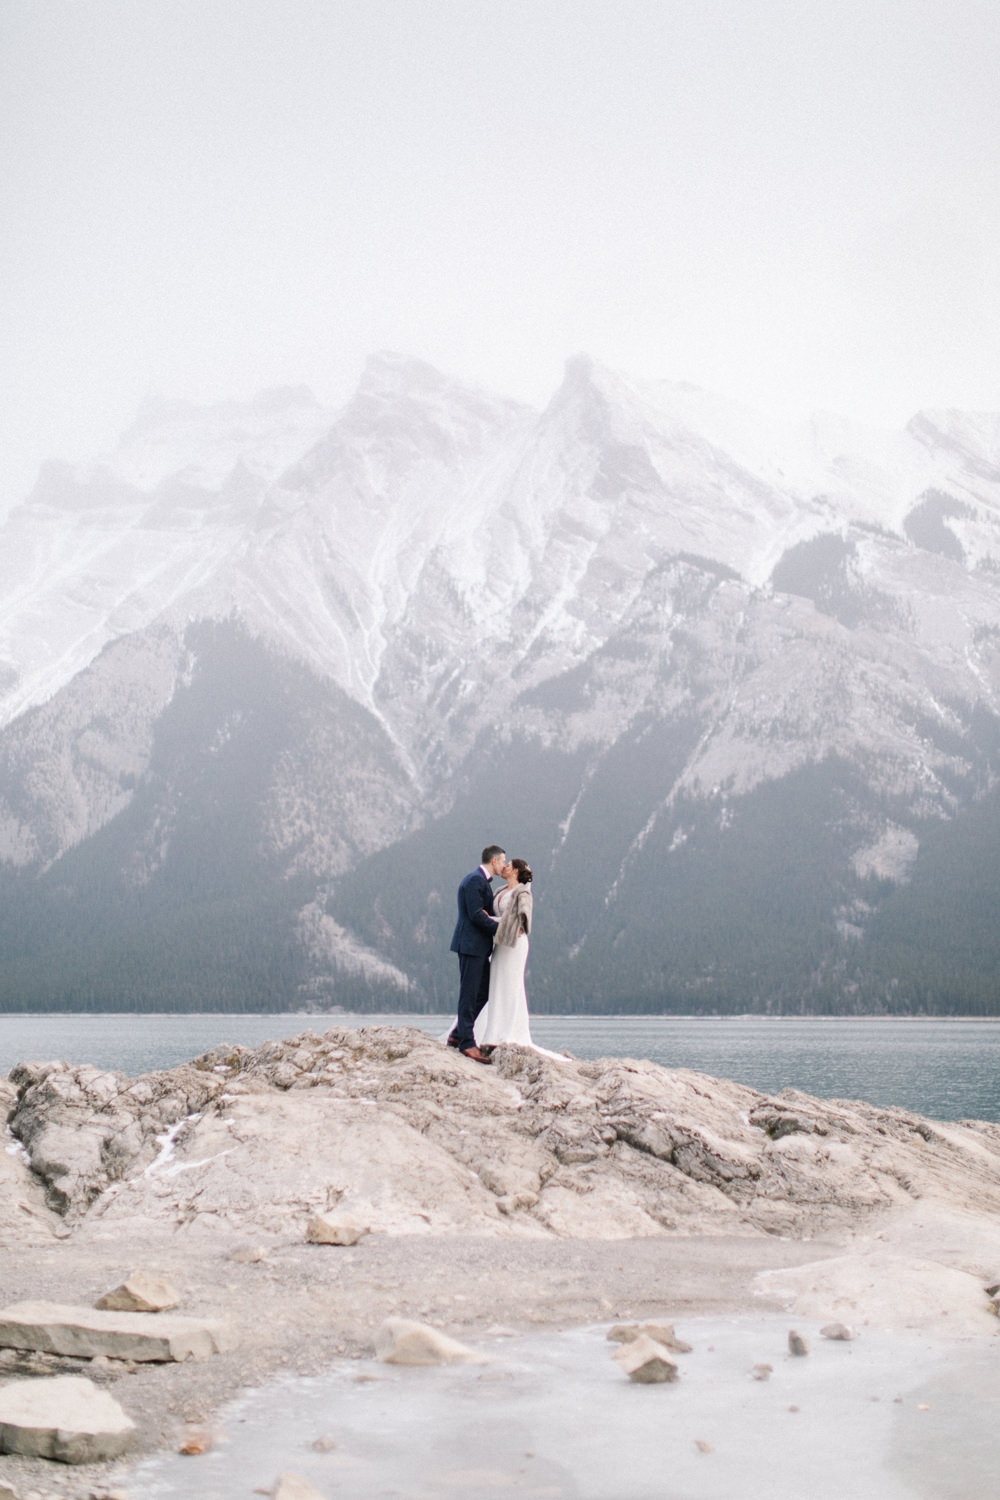 Torsten-and-Nina-at-Fairmont-banff-springs-Lynn-fletcher-weddings-63.jpg